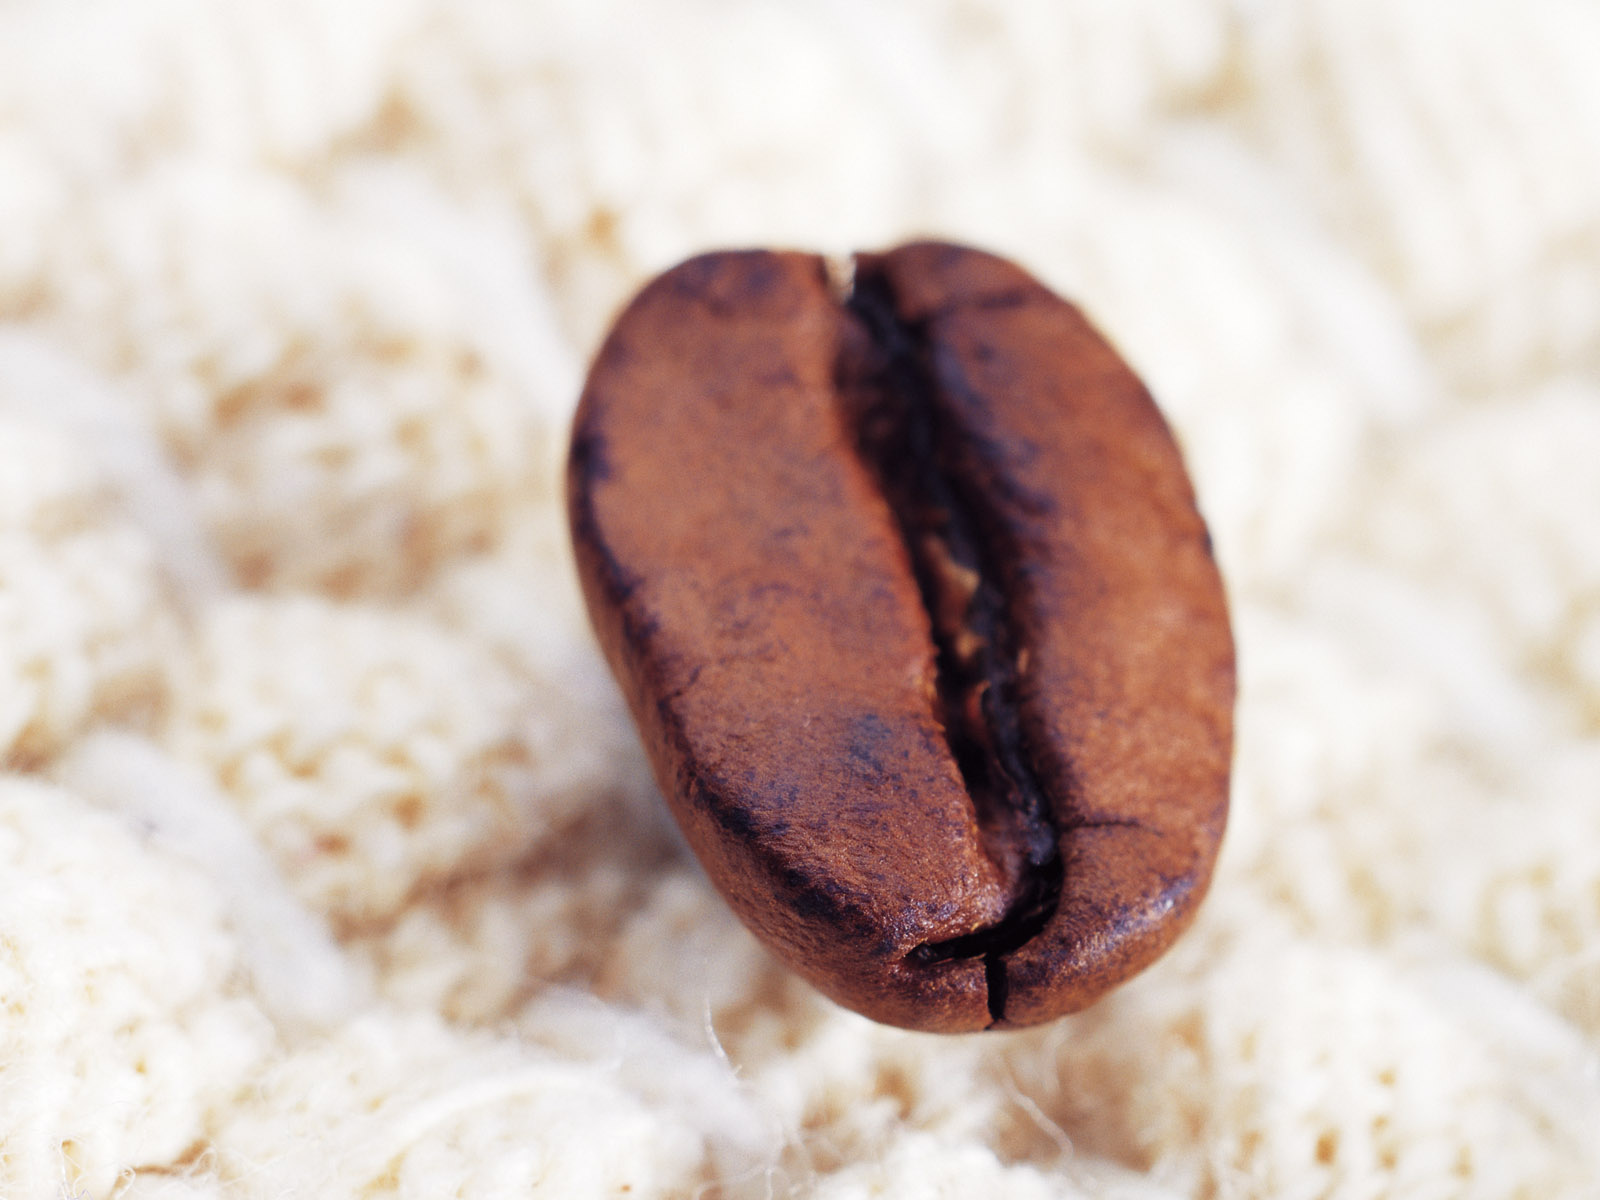 Coffee wallpaper high definition 12911